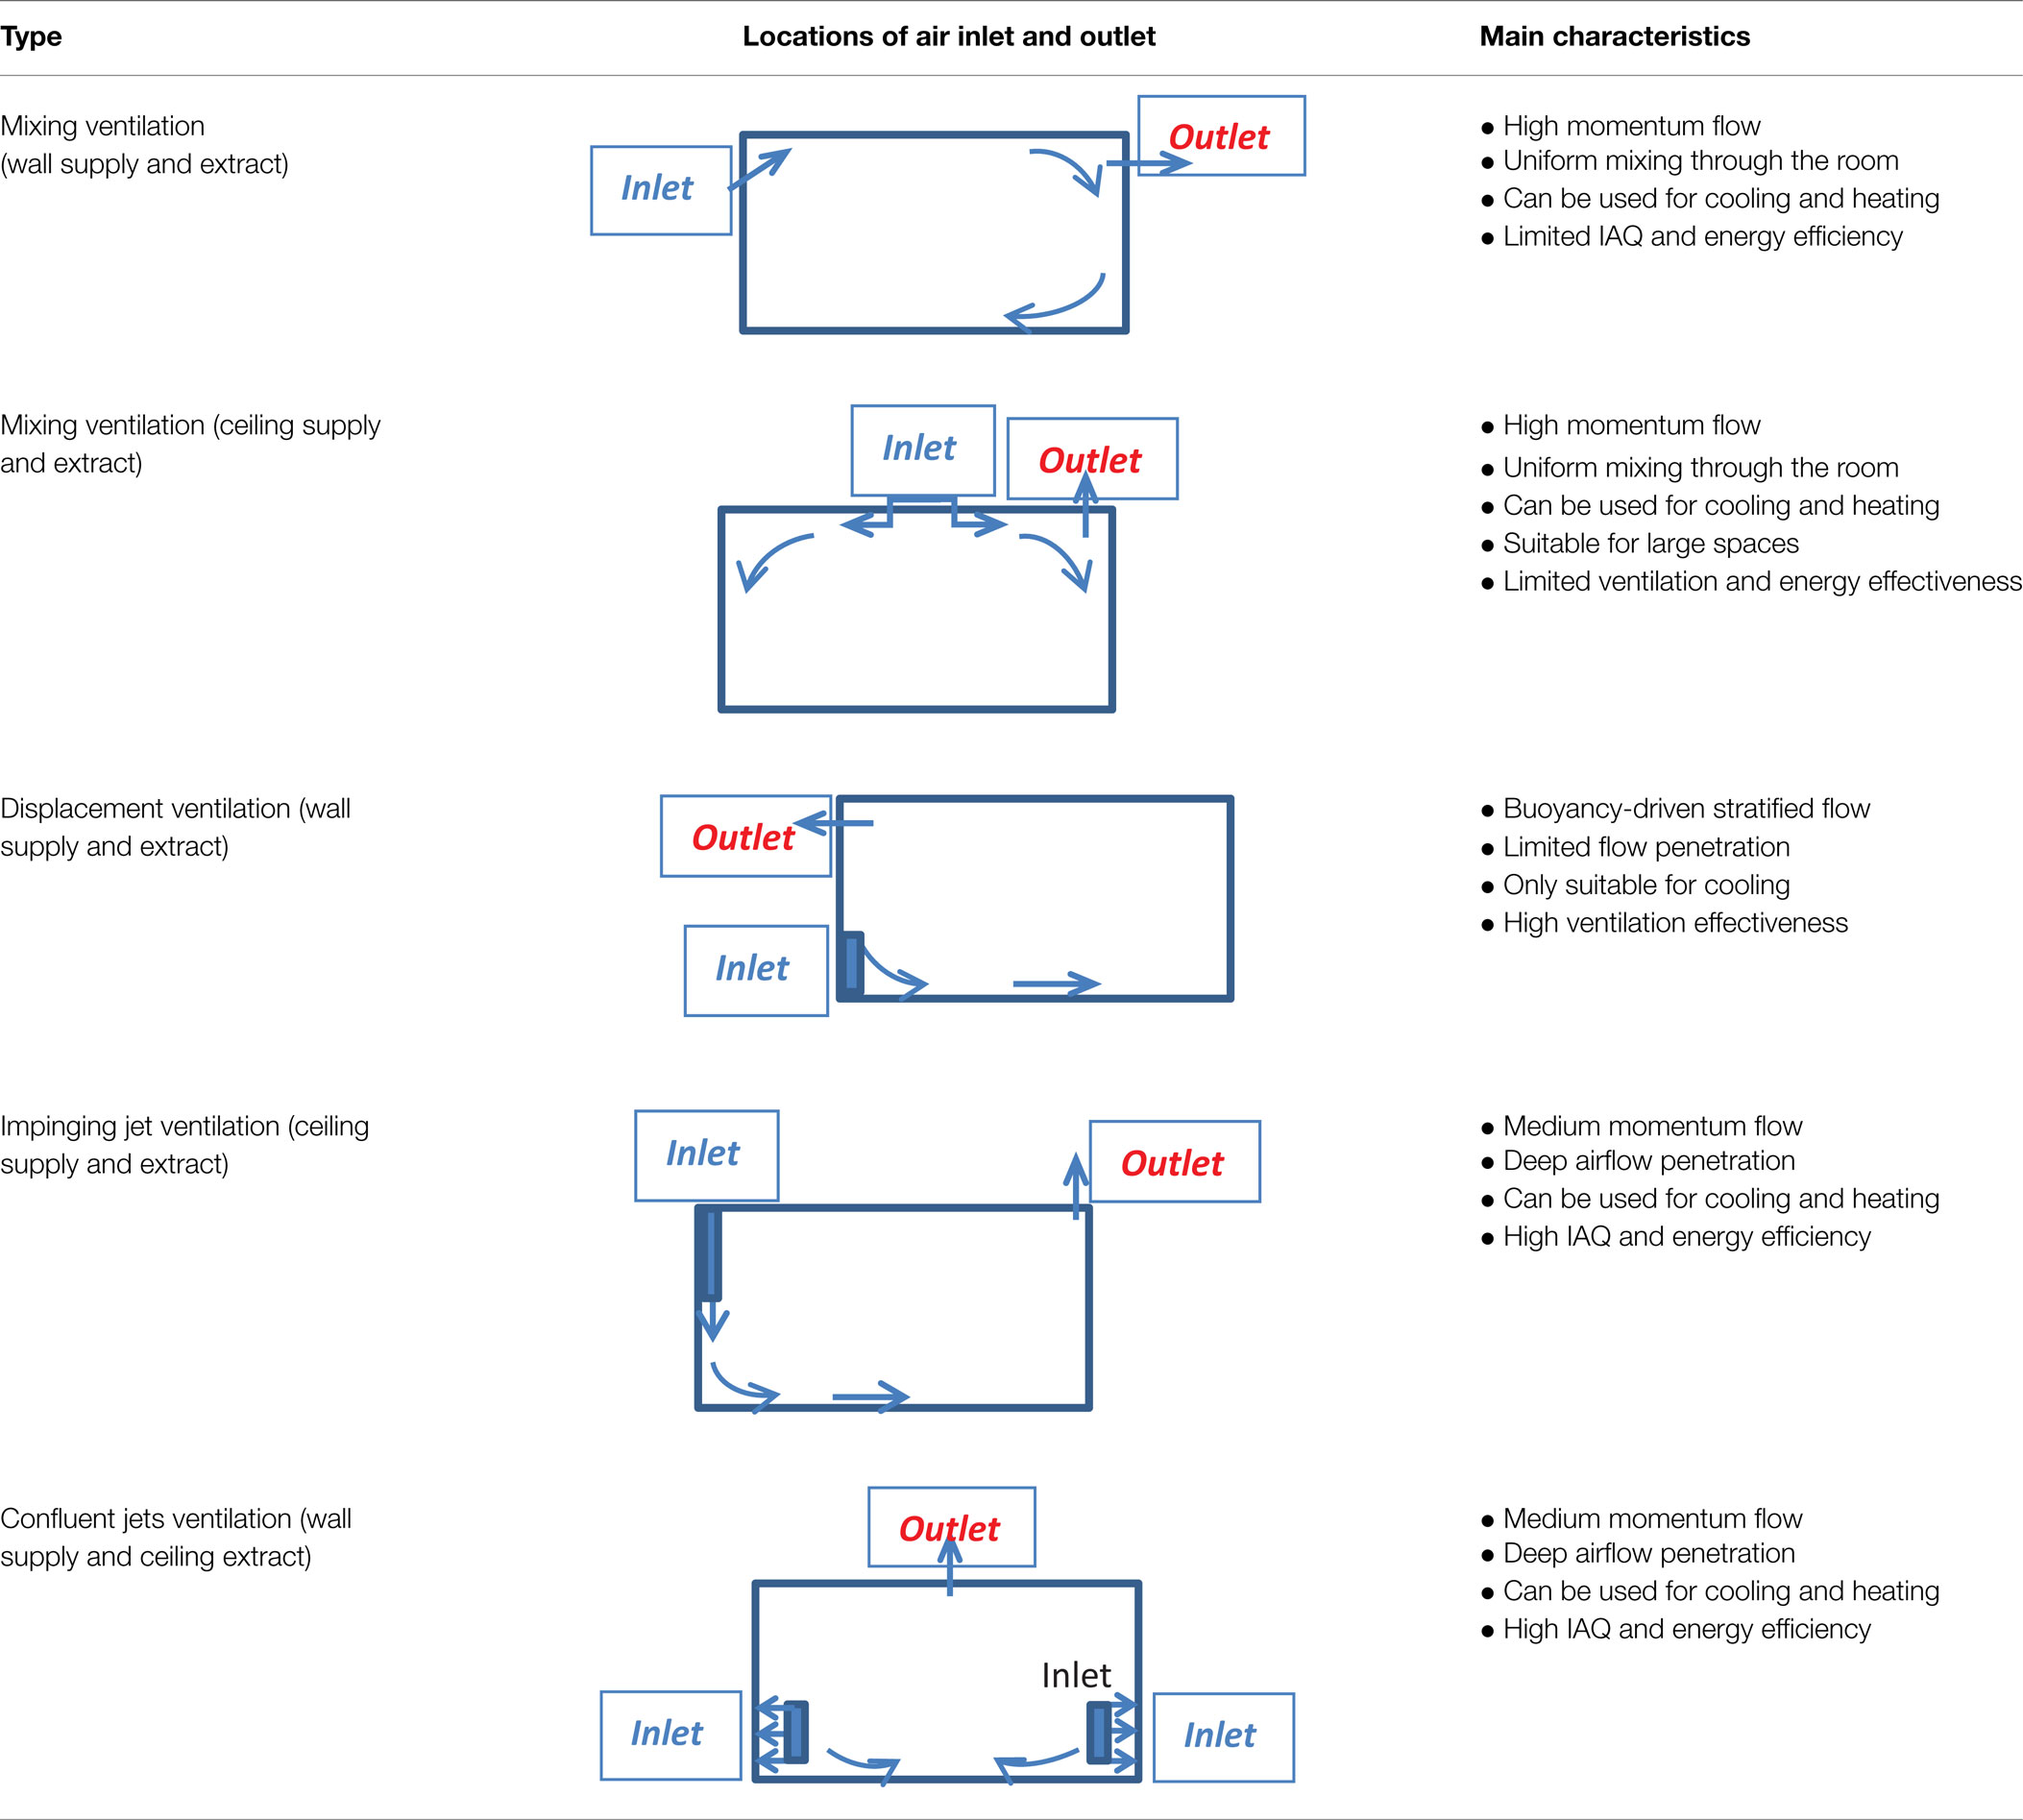 Plc moreover Hvac also P Id Drawing D 1639 as well Full moreover ML 38. on hvac diagrams